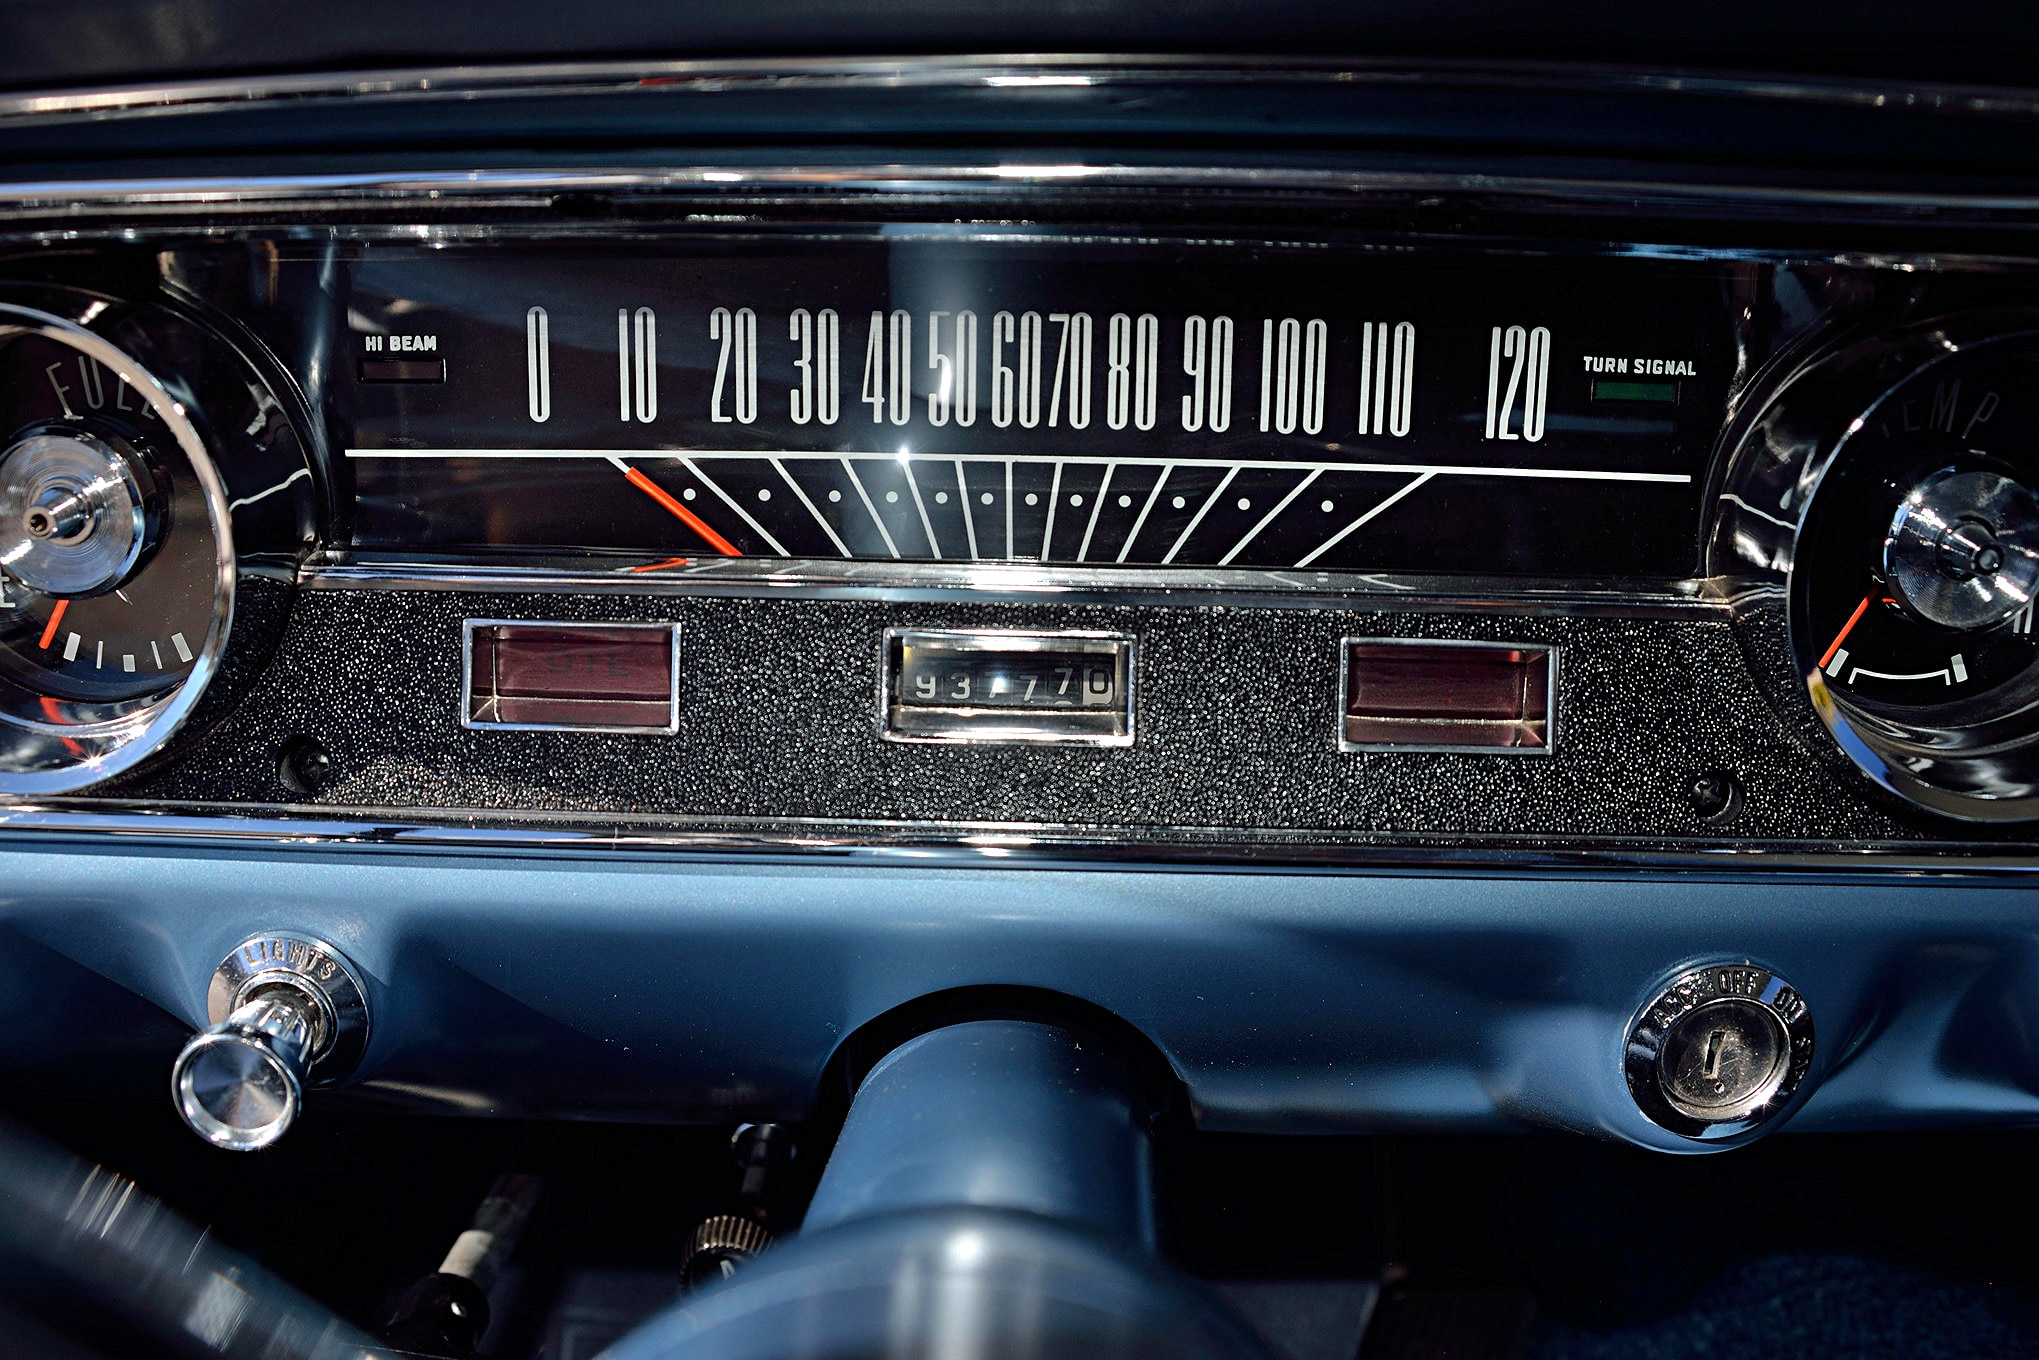 Fria 1965 ford mustang instrument panel detail